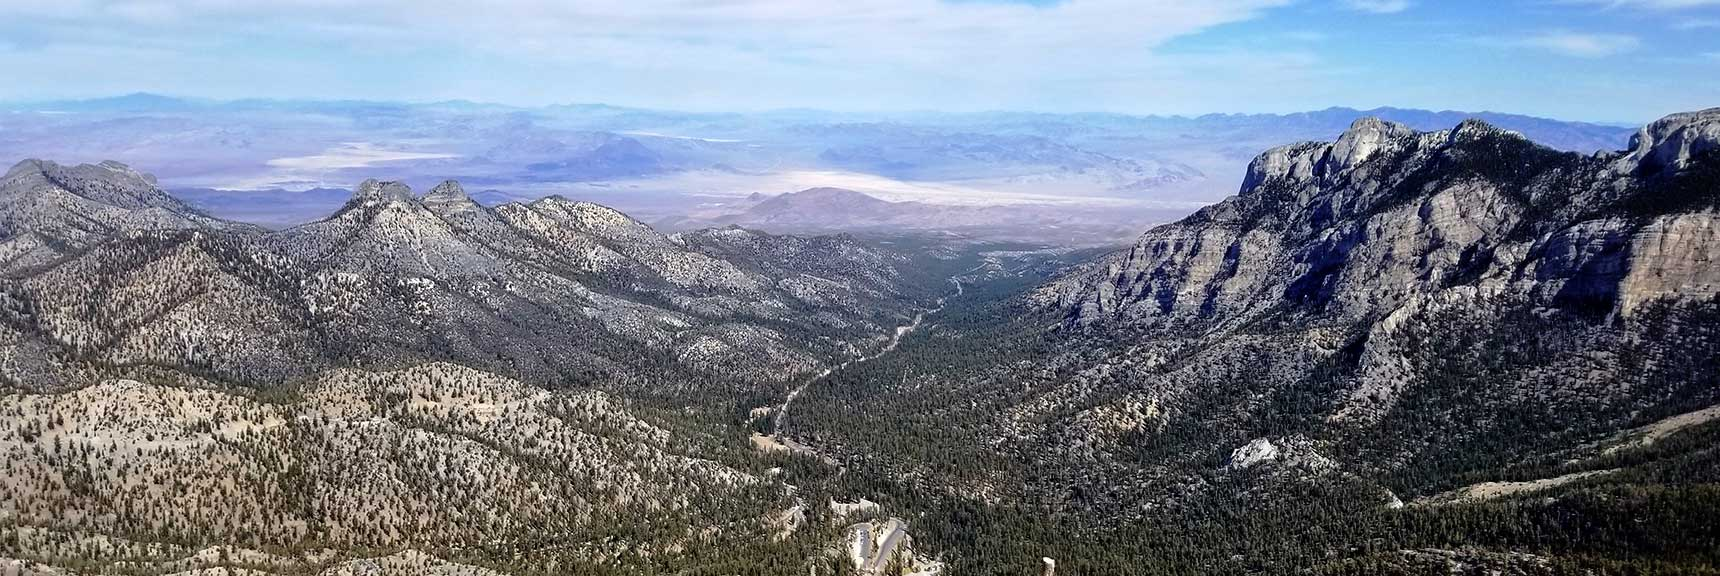 Lee Canyon Viewed from Lee Peak in Spring Mountains, Nevada Slide 001